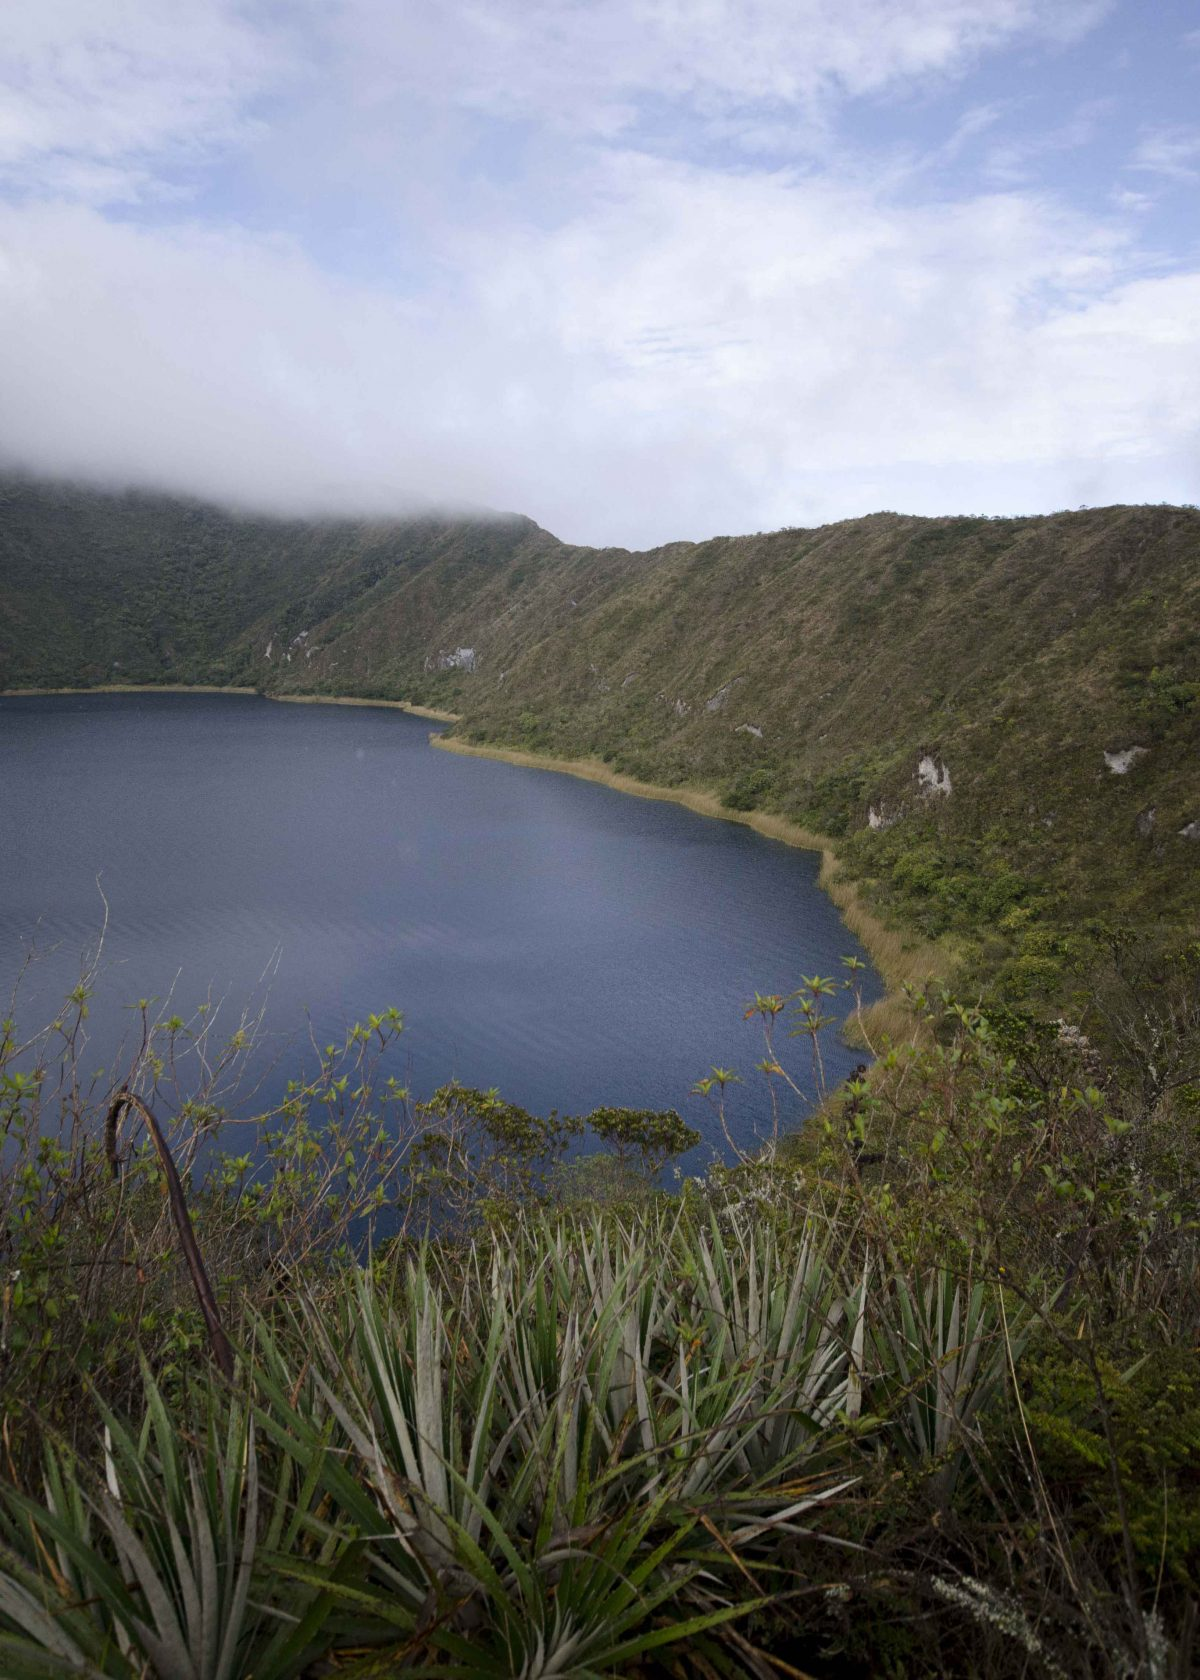 View of the Lake from the Hiking Trail, Laguna Cuicocha, Ecuador